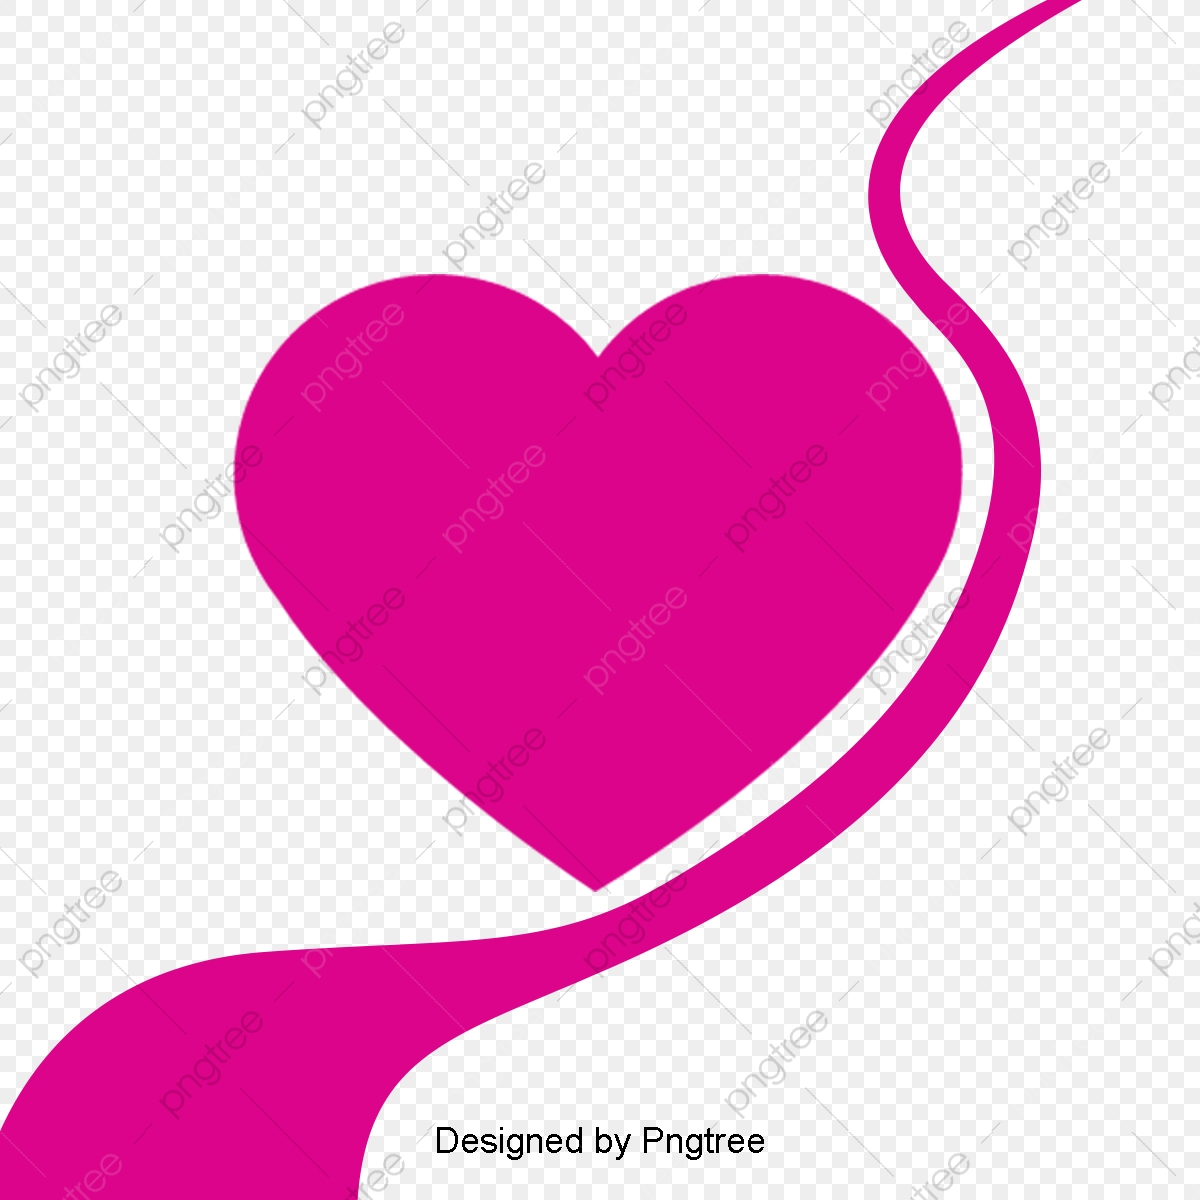 Love, Heart Shaped, Love Clipart PNG Transparent Clipart